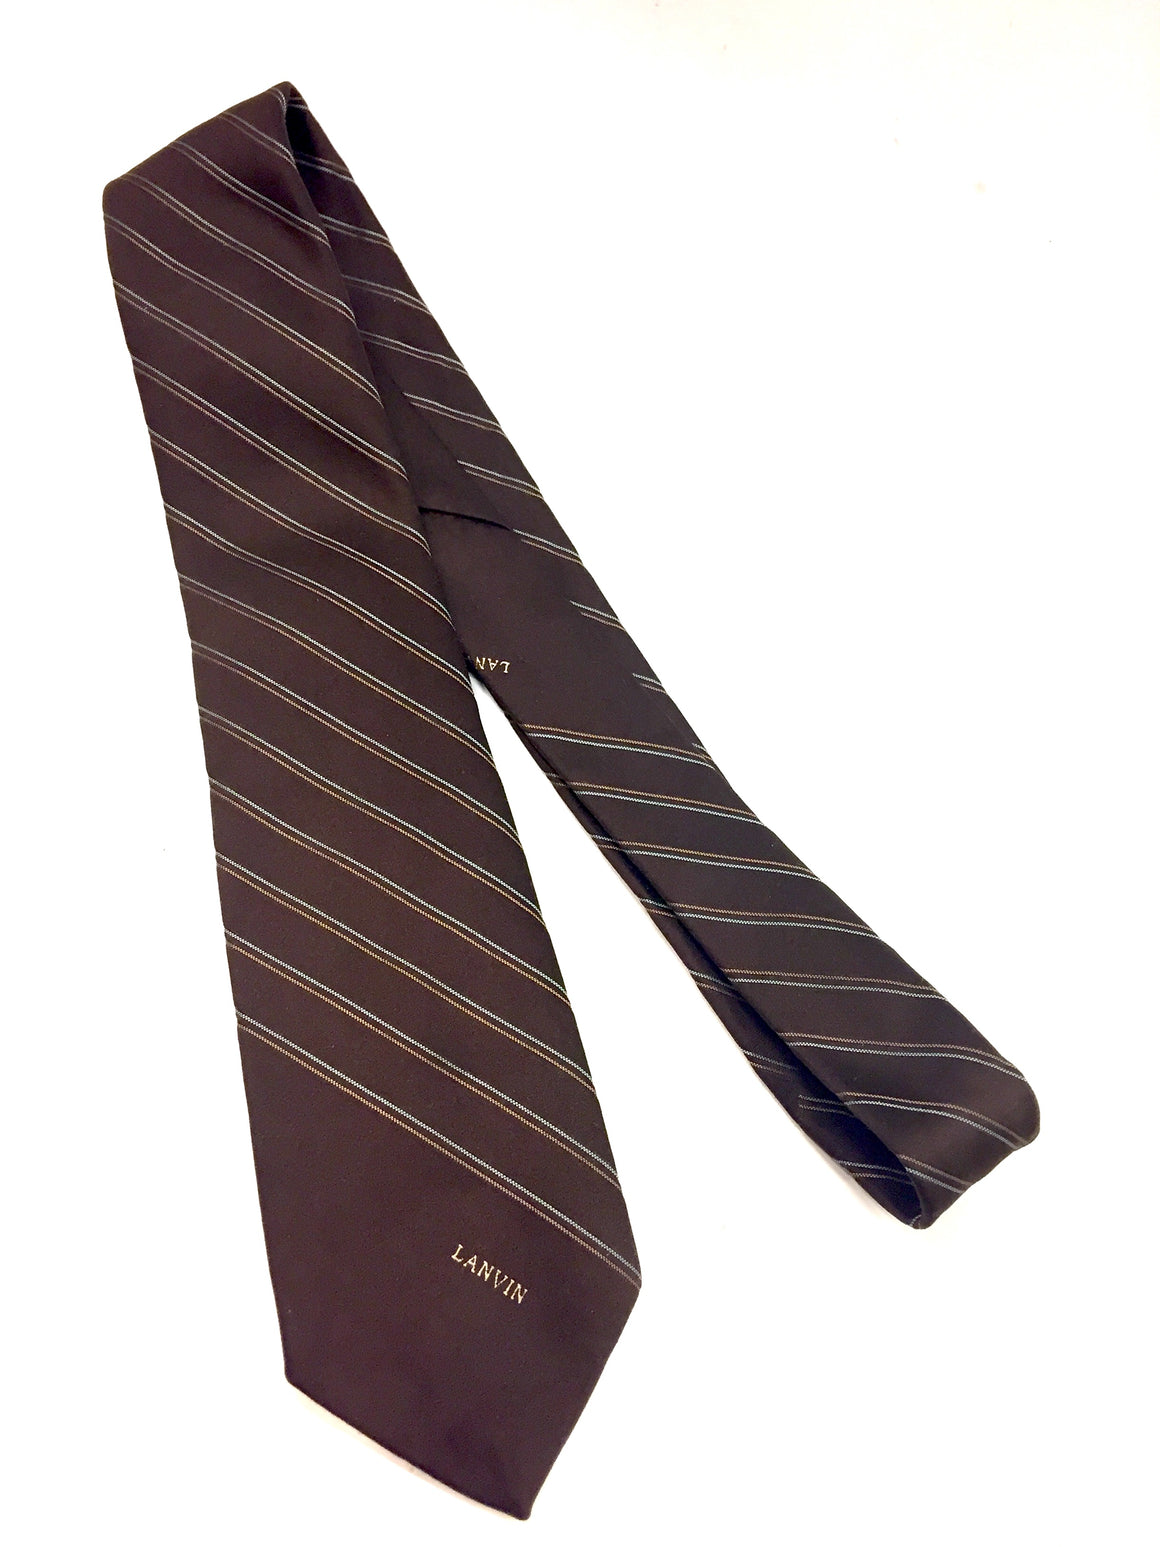 Vintage LANVIN Brown Striped Silk men's Neck Tie